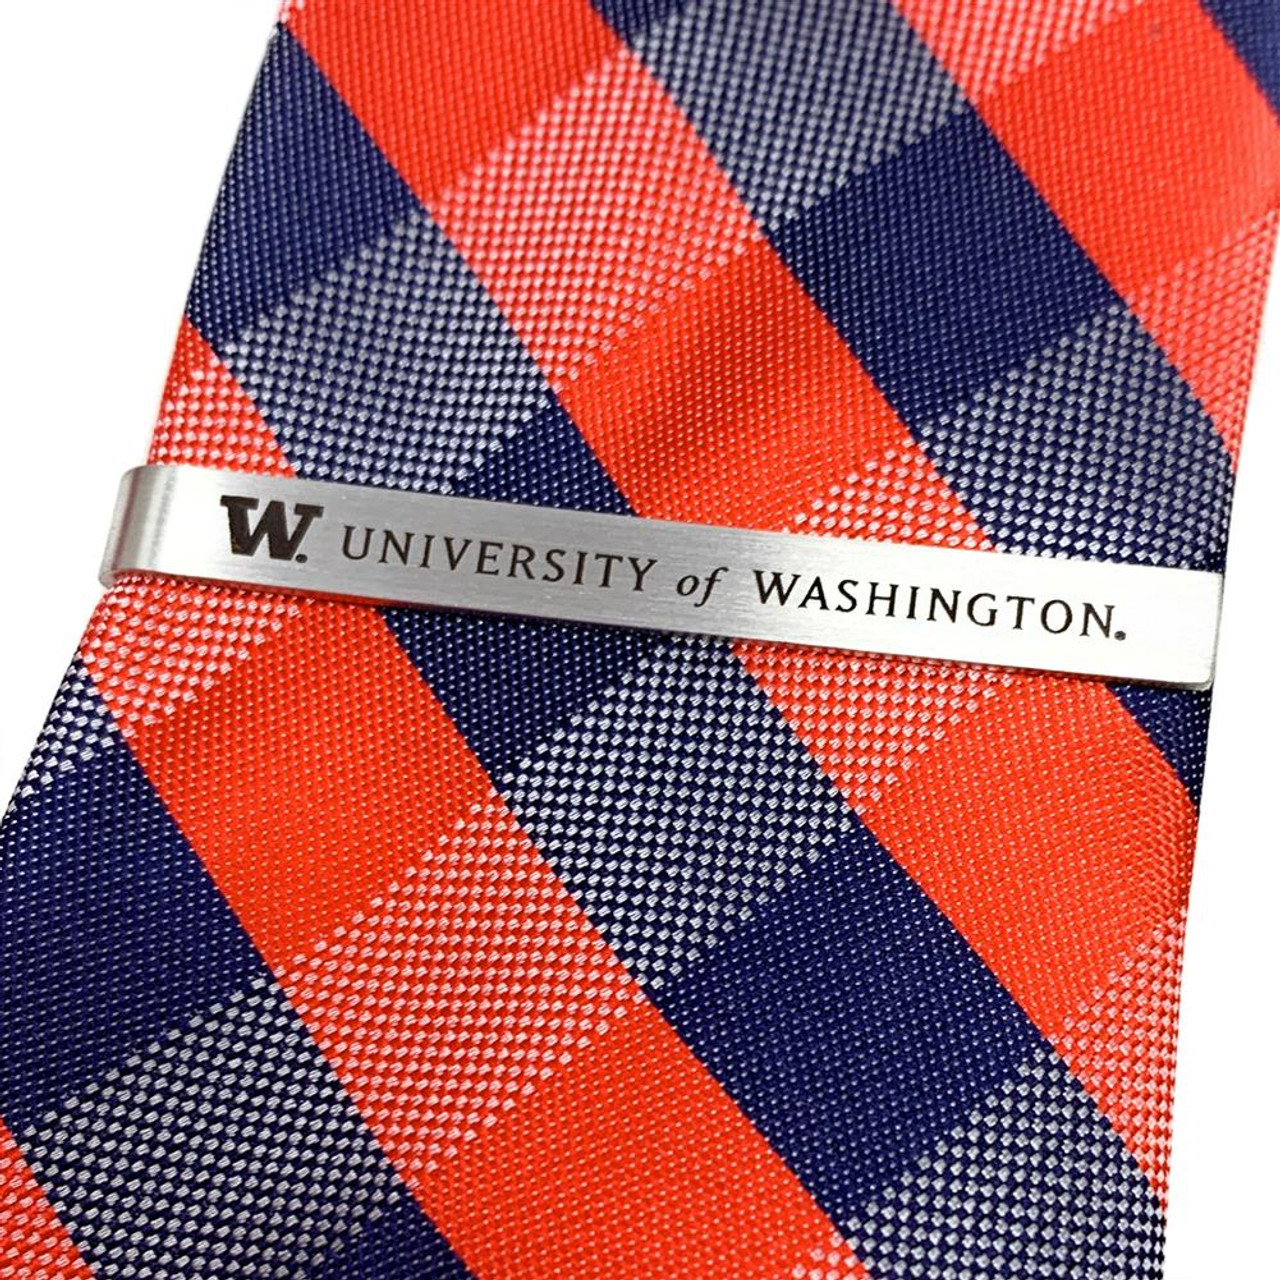 University of Washington Tie Clip Silver Tie Bar Gift Set